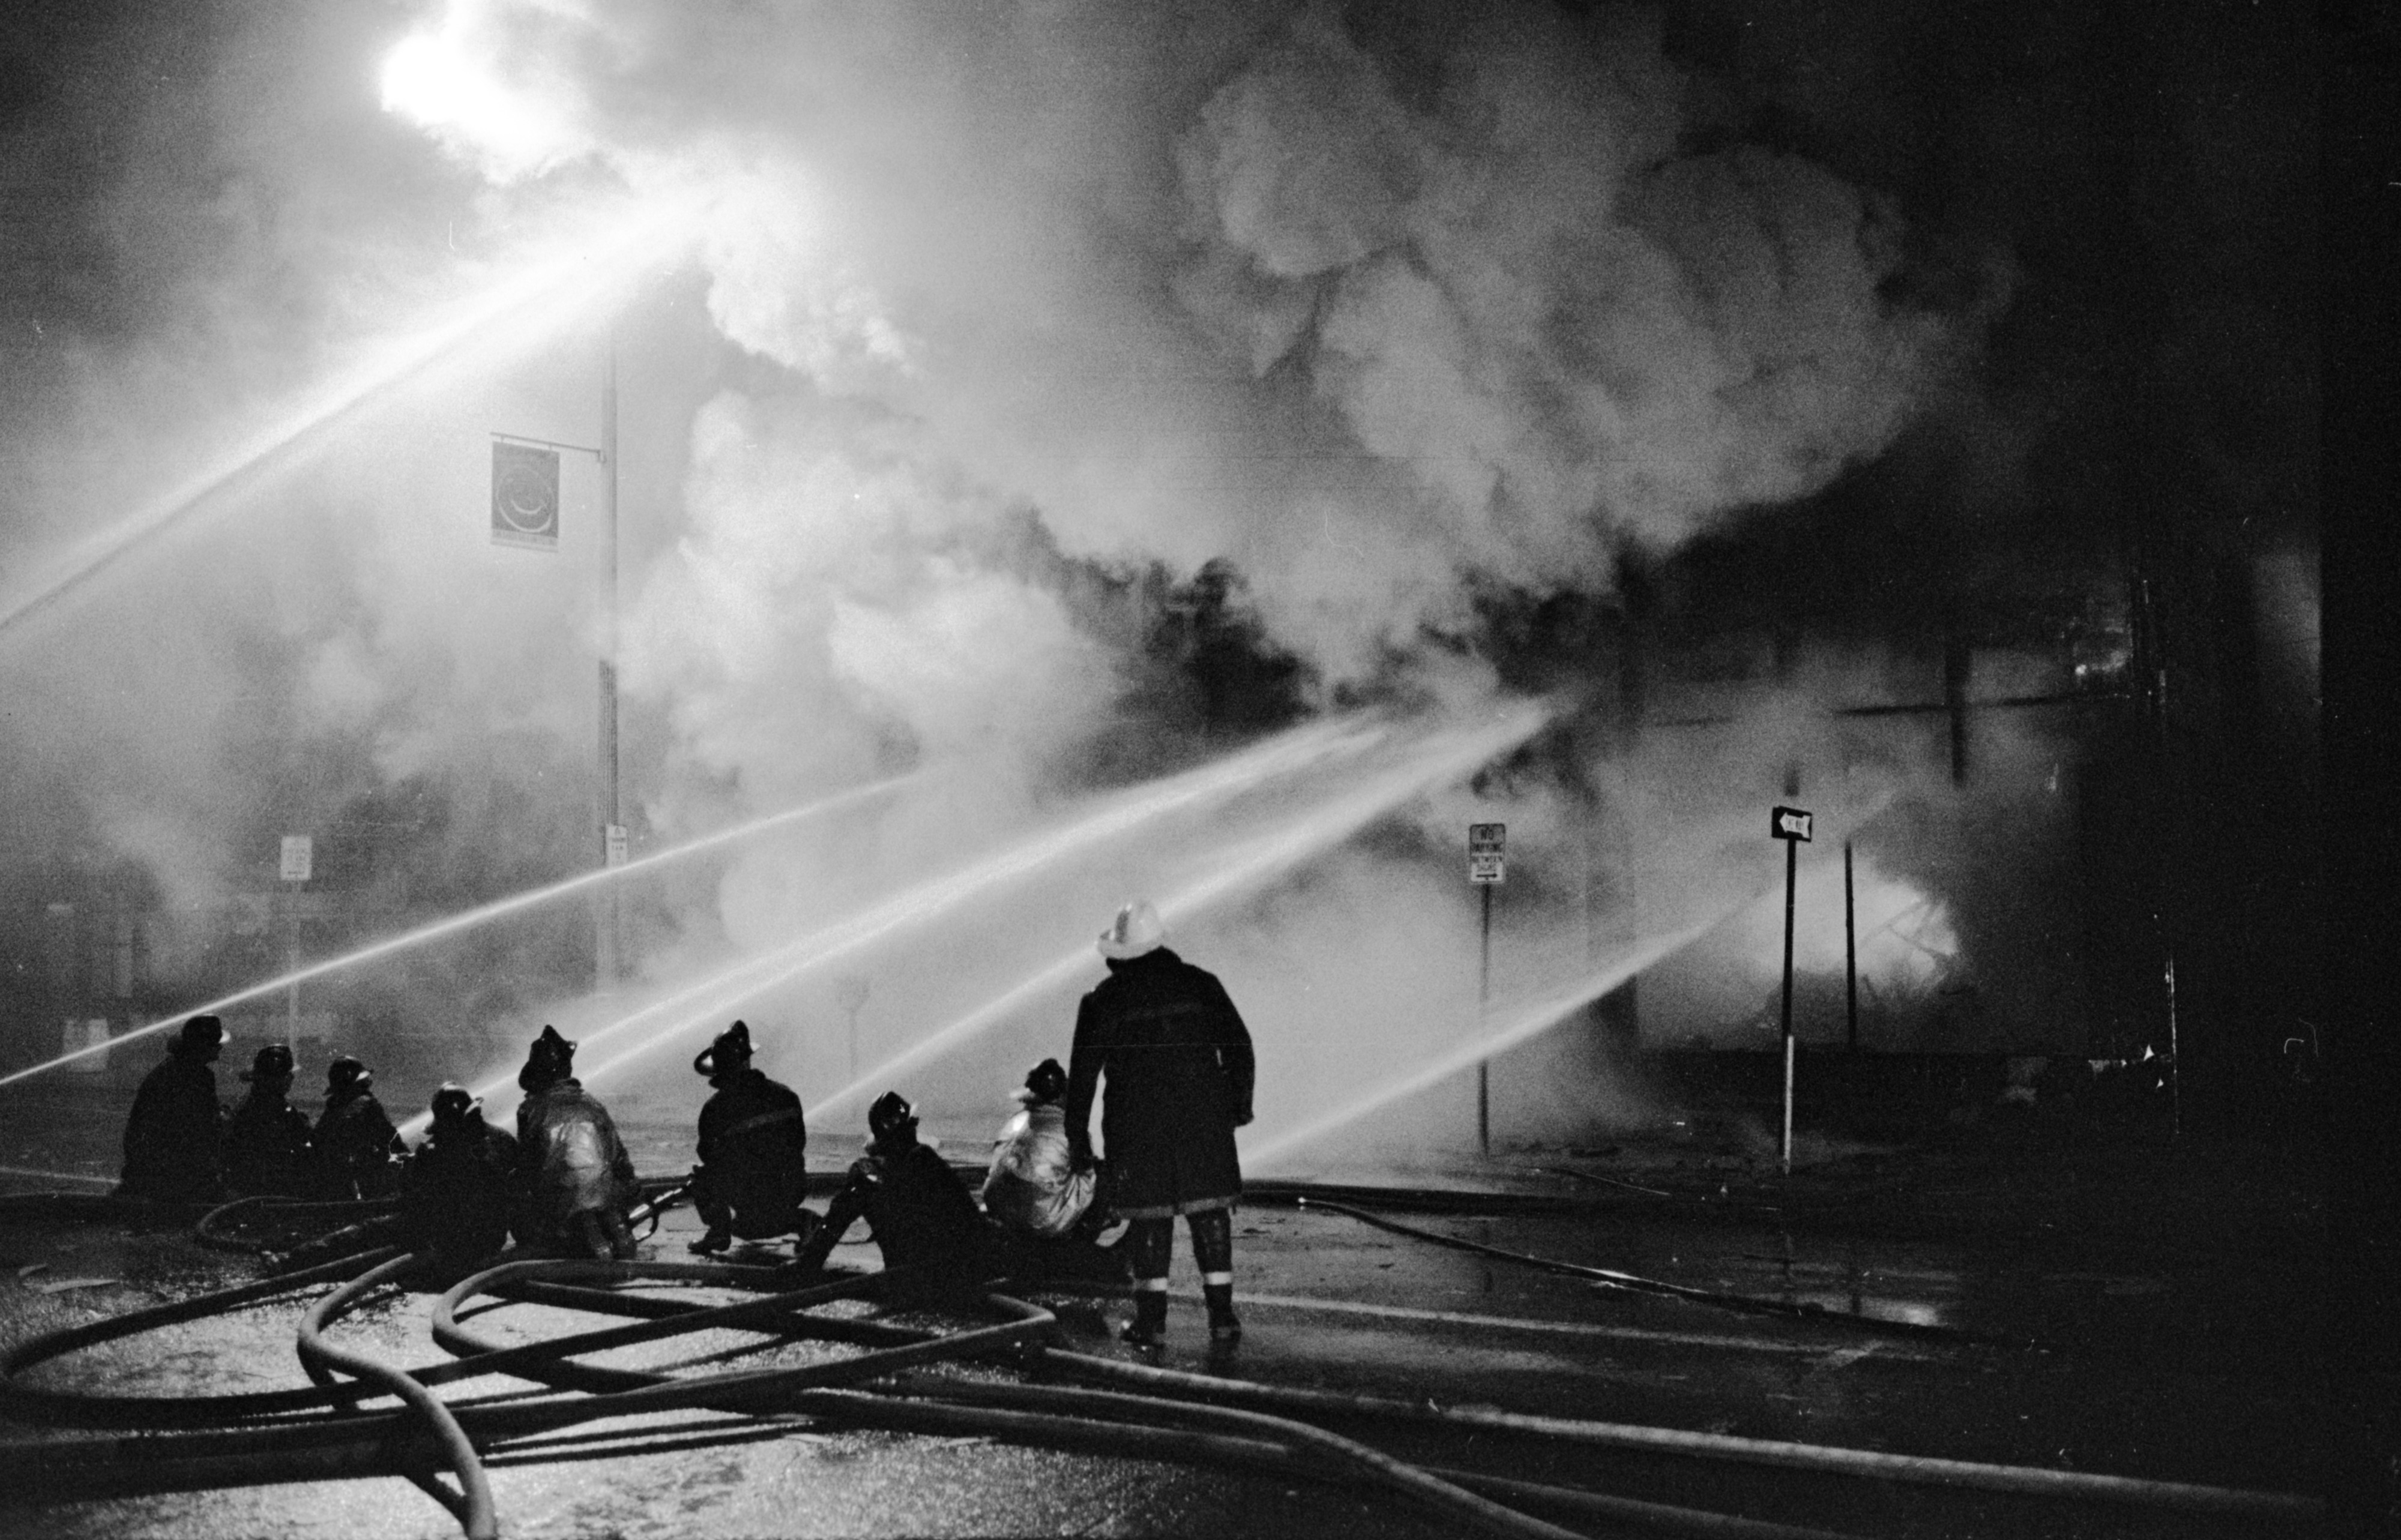 Martin Haller Furniture Store Fire, November 1969 image